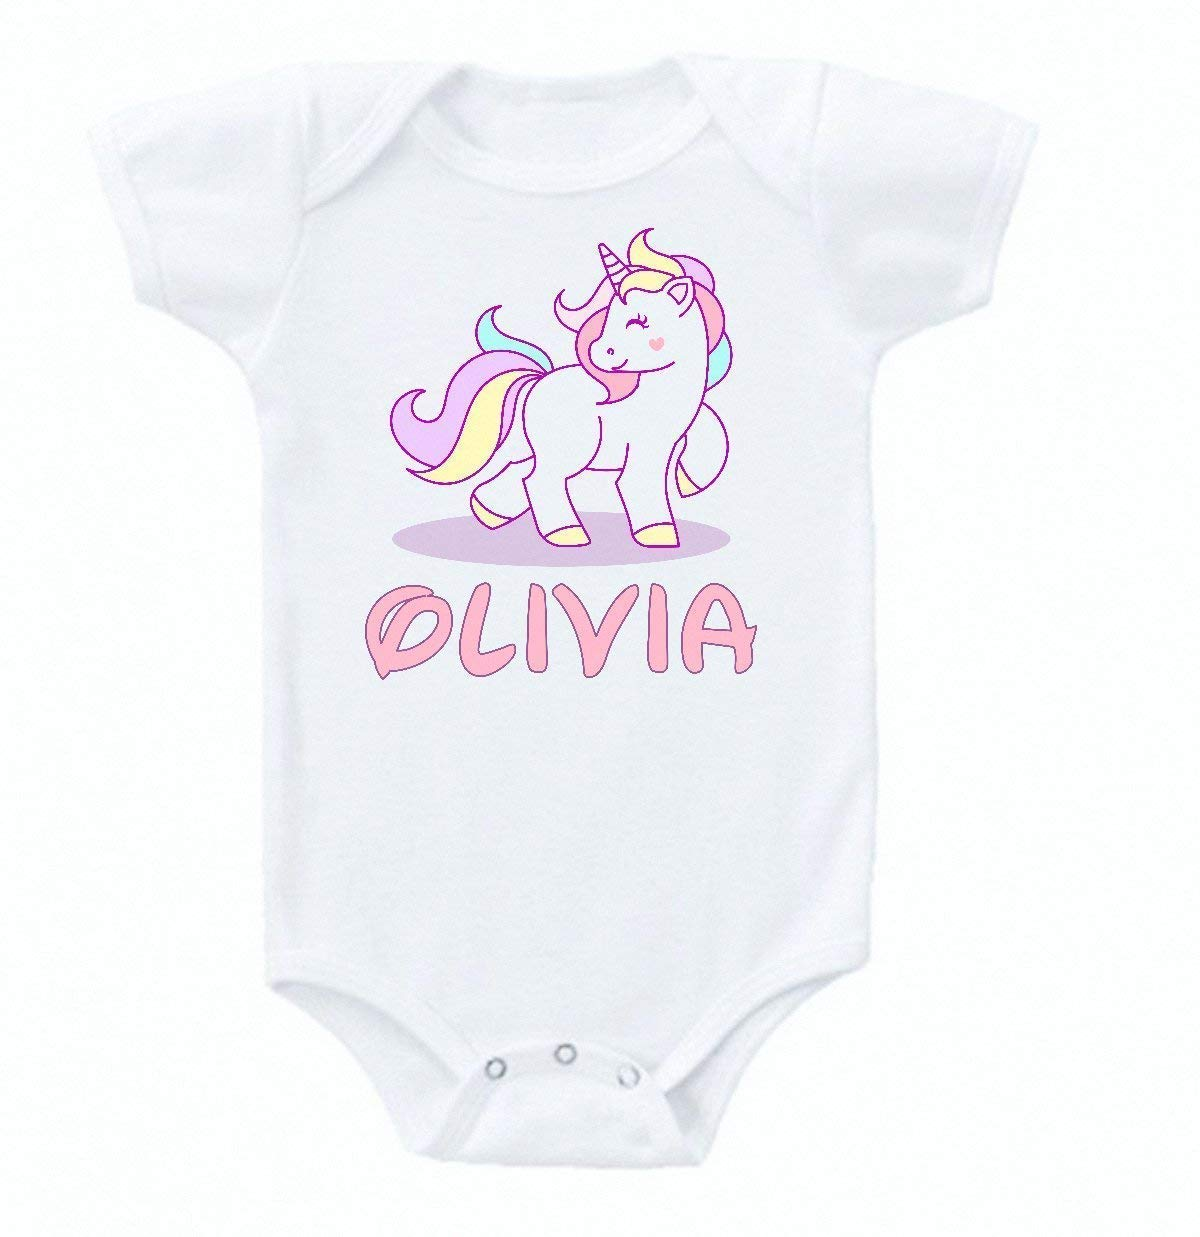 Unicorn Cloud Pink Baby Onesie Bodysuit Short Sleeve Cute Personalized Custom Name 0 to 3 mos or 3 to 6 months or 6 to 12 months for Girls Design 3